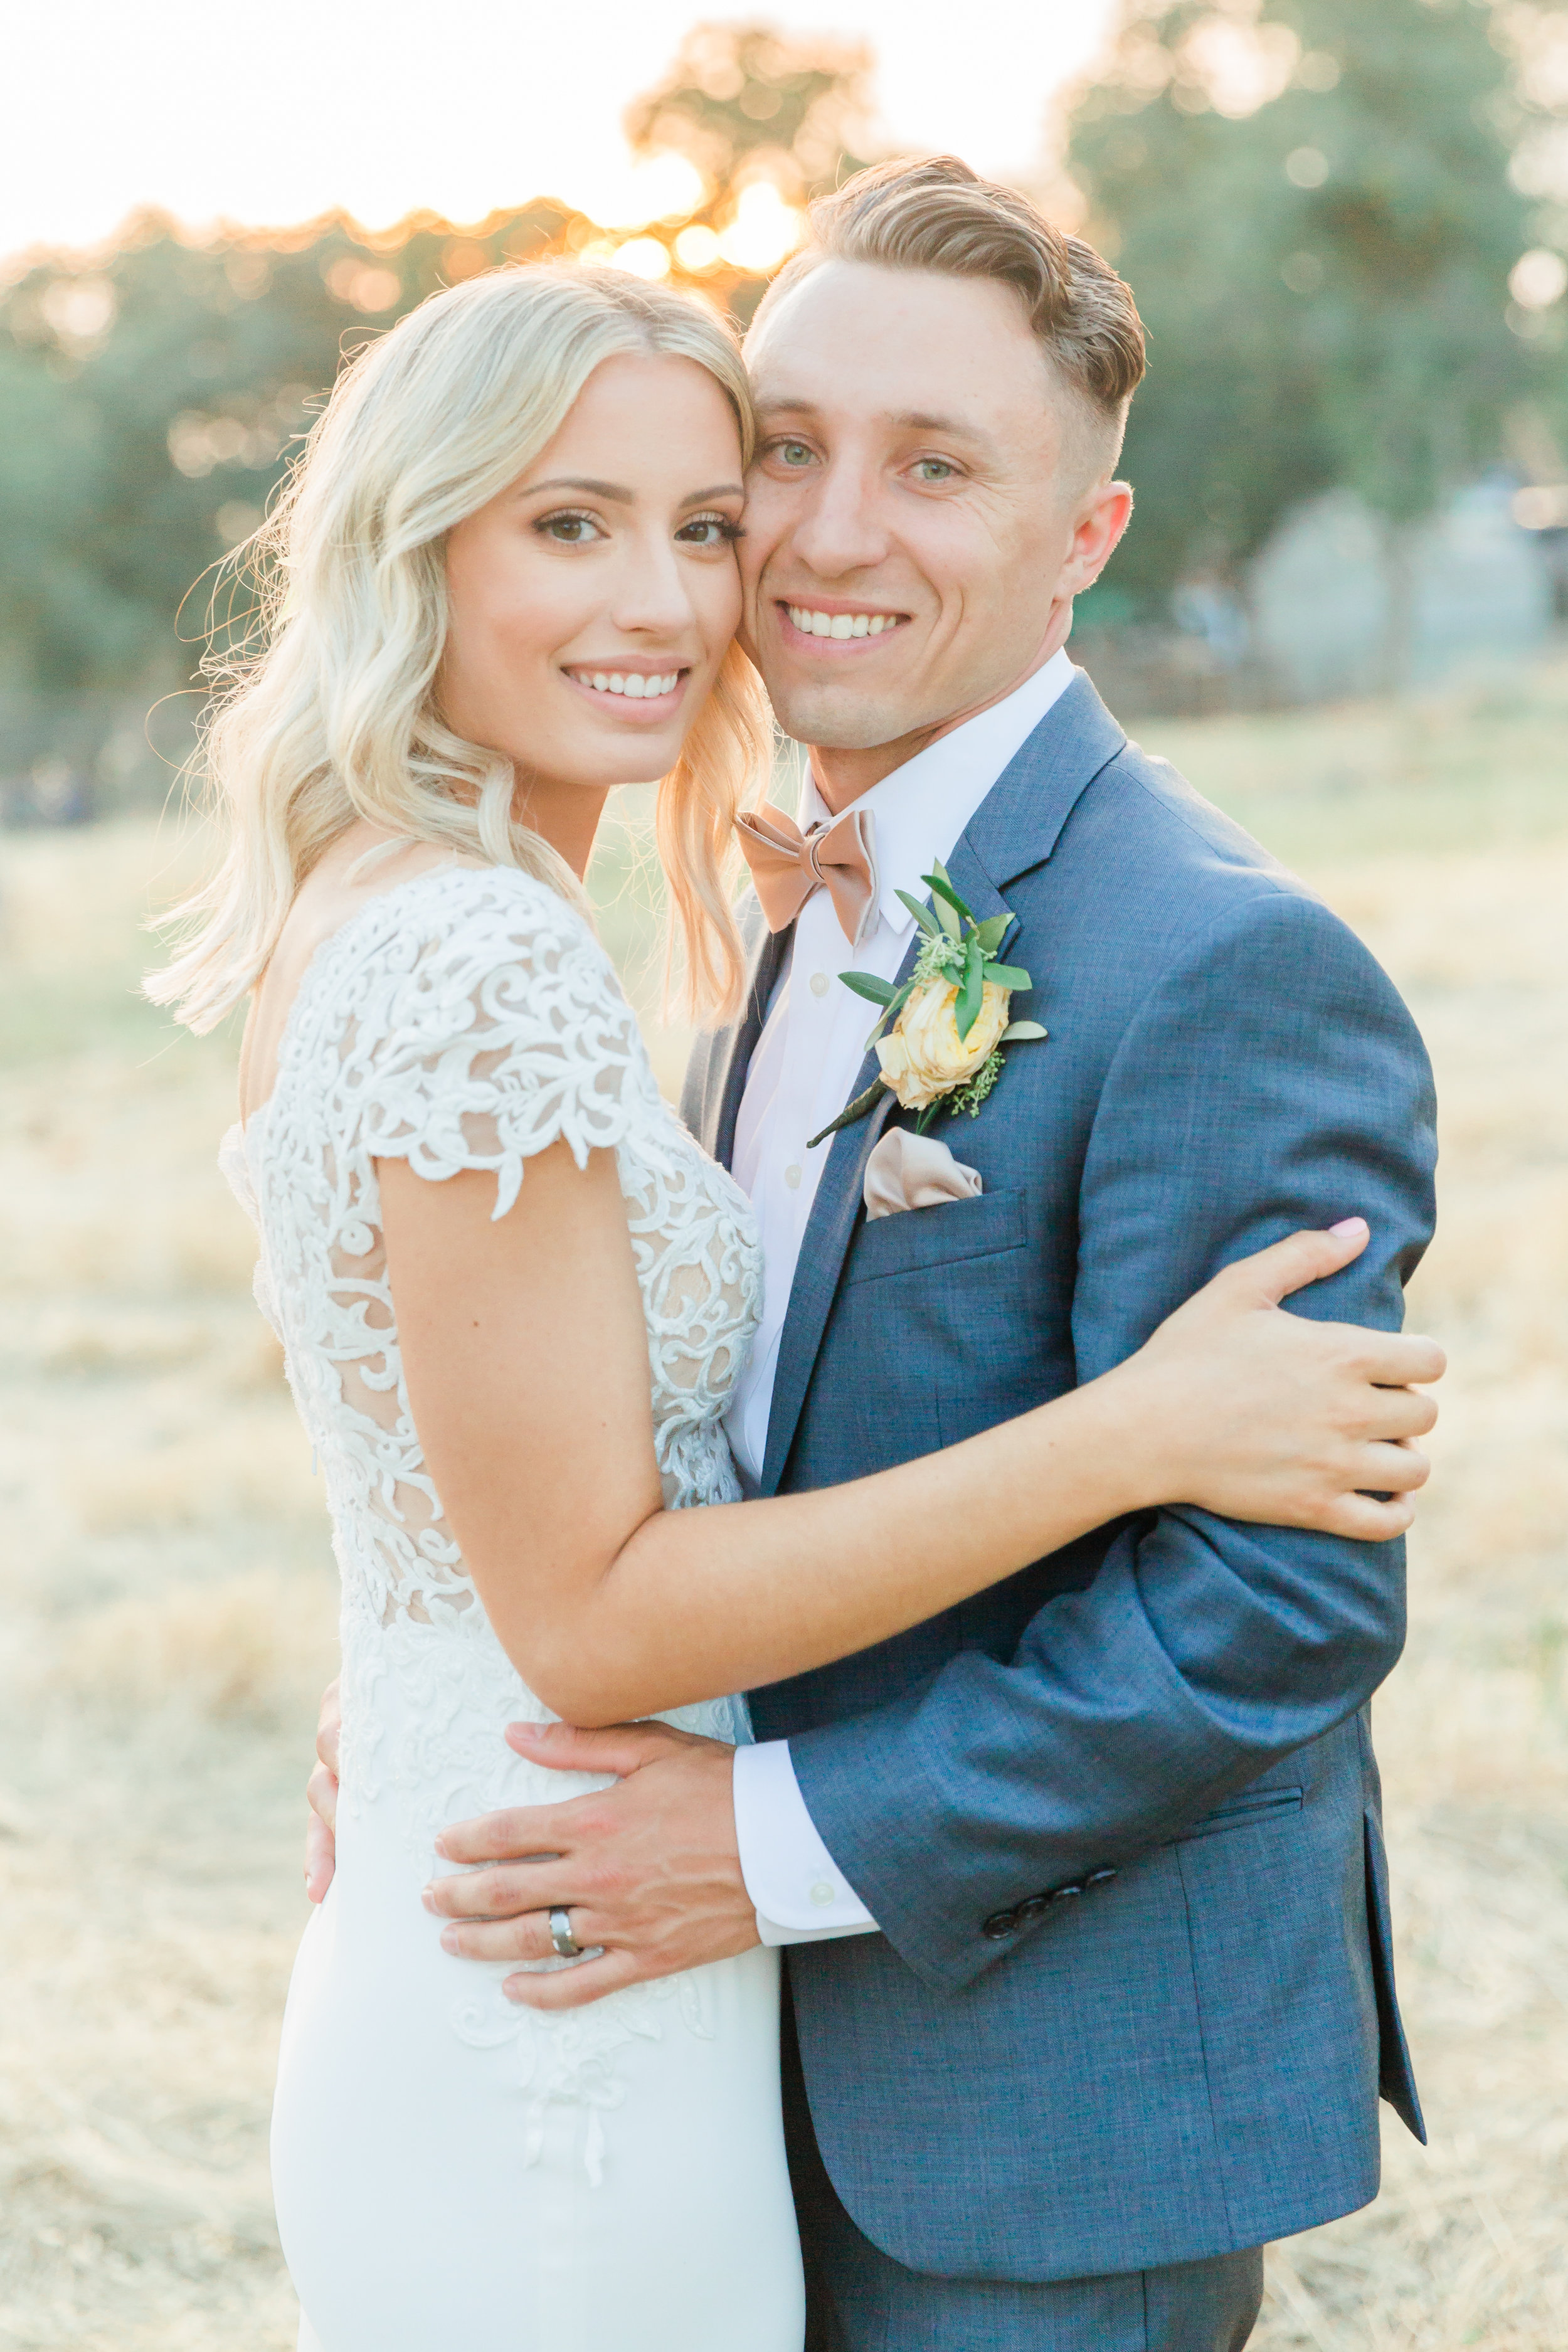 Kaitlynn and Colby - Married - Sneaks - Lauren Alisse Photography-113.jpg